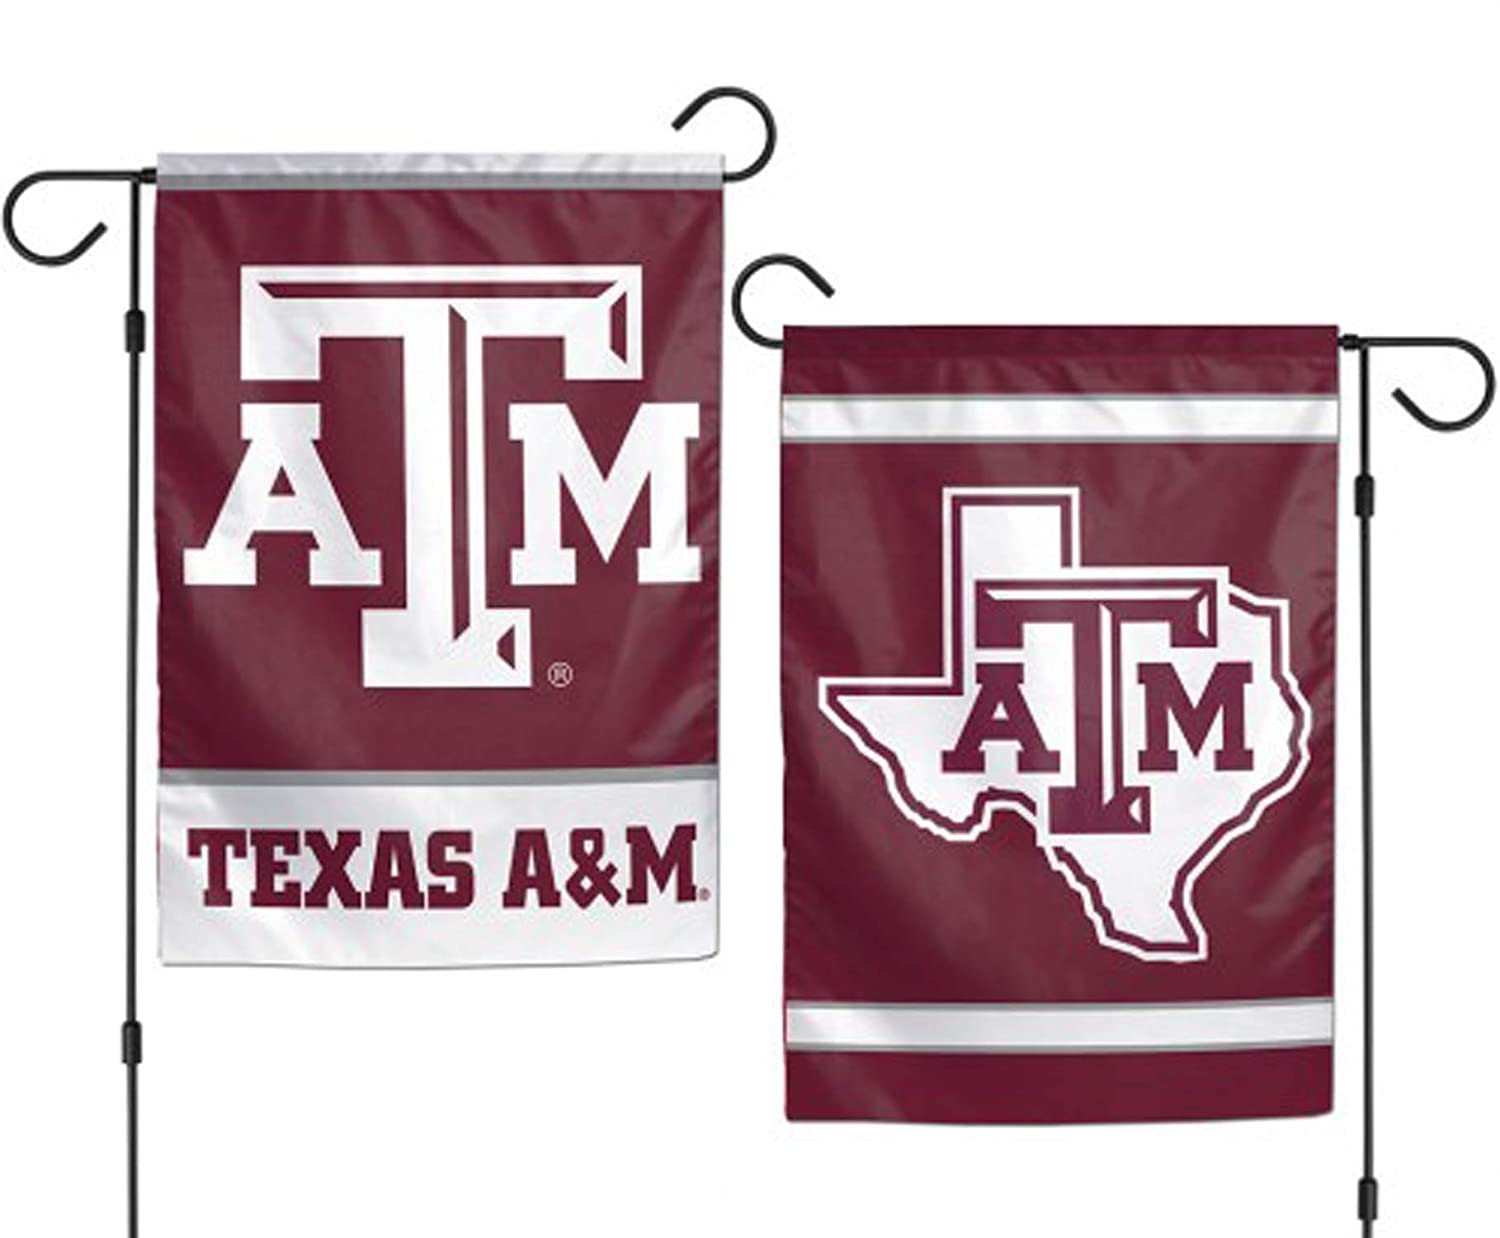 WinCraft NCAA Texas A&M University Aggies 12x18 Inch 2-Sided Outdoor Garden Flag Banner